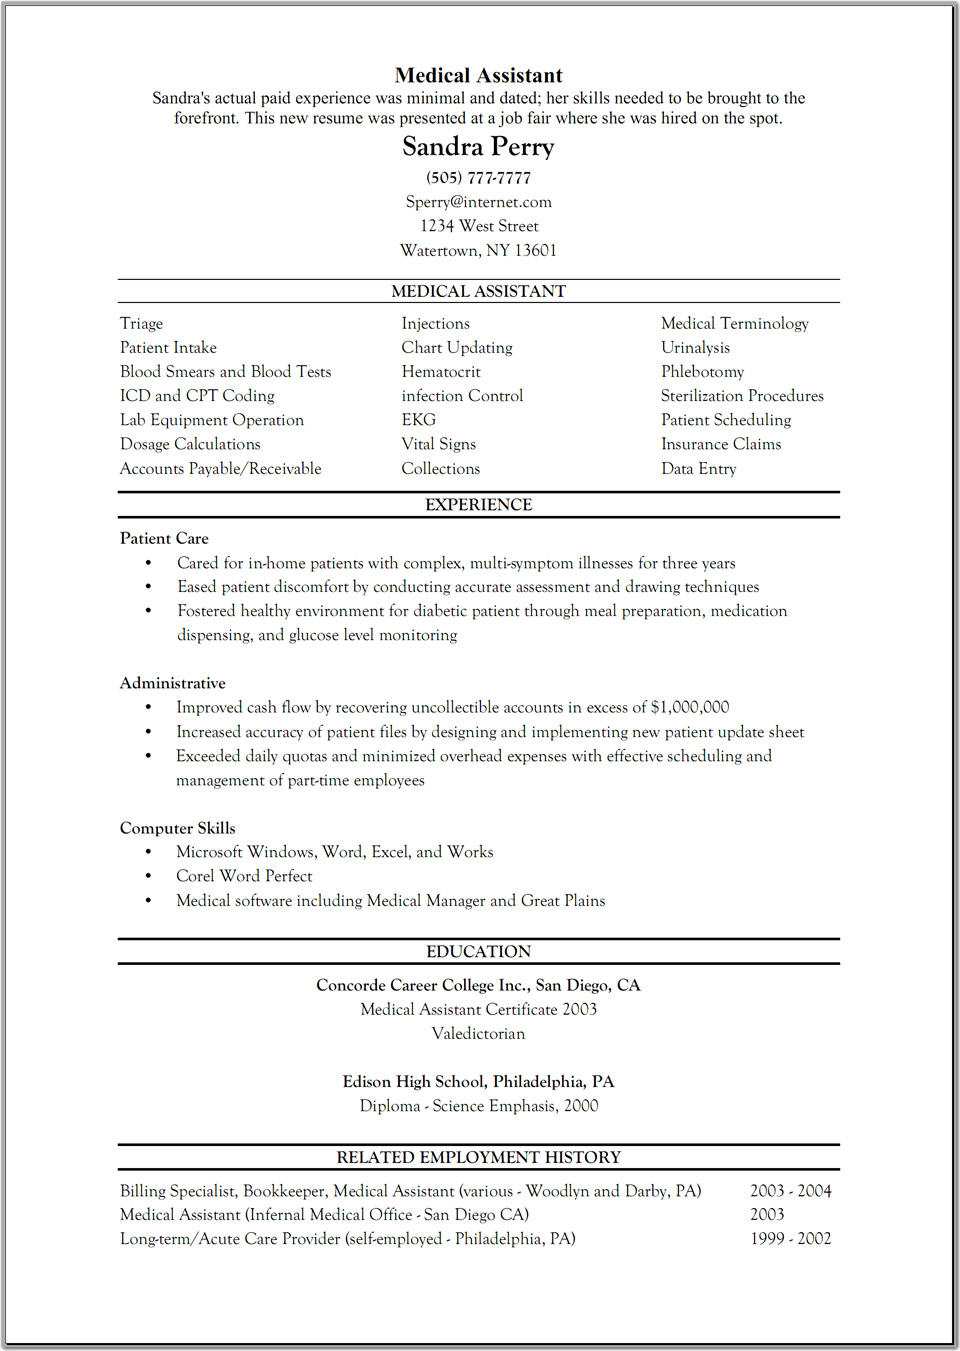 sample resume for medical administrative assistant entry level medical administrative assistant resume resume examples for medical assistants entry level medical assistant sandra